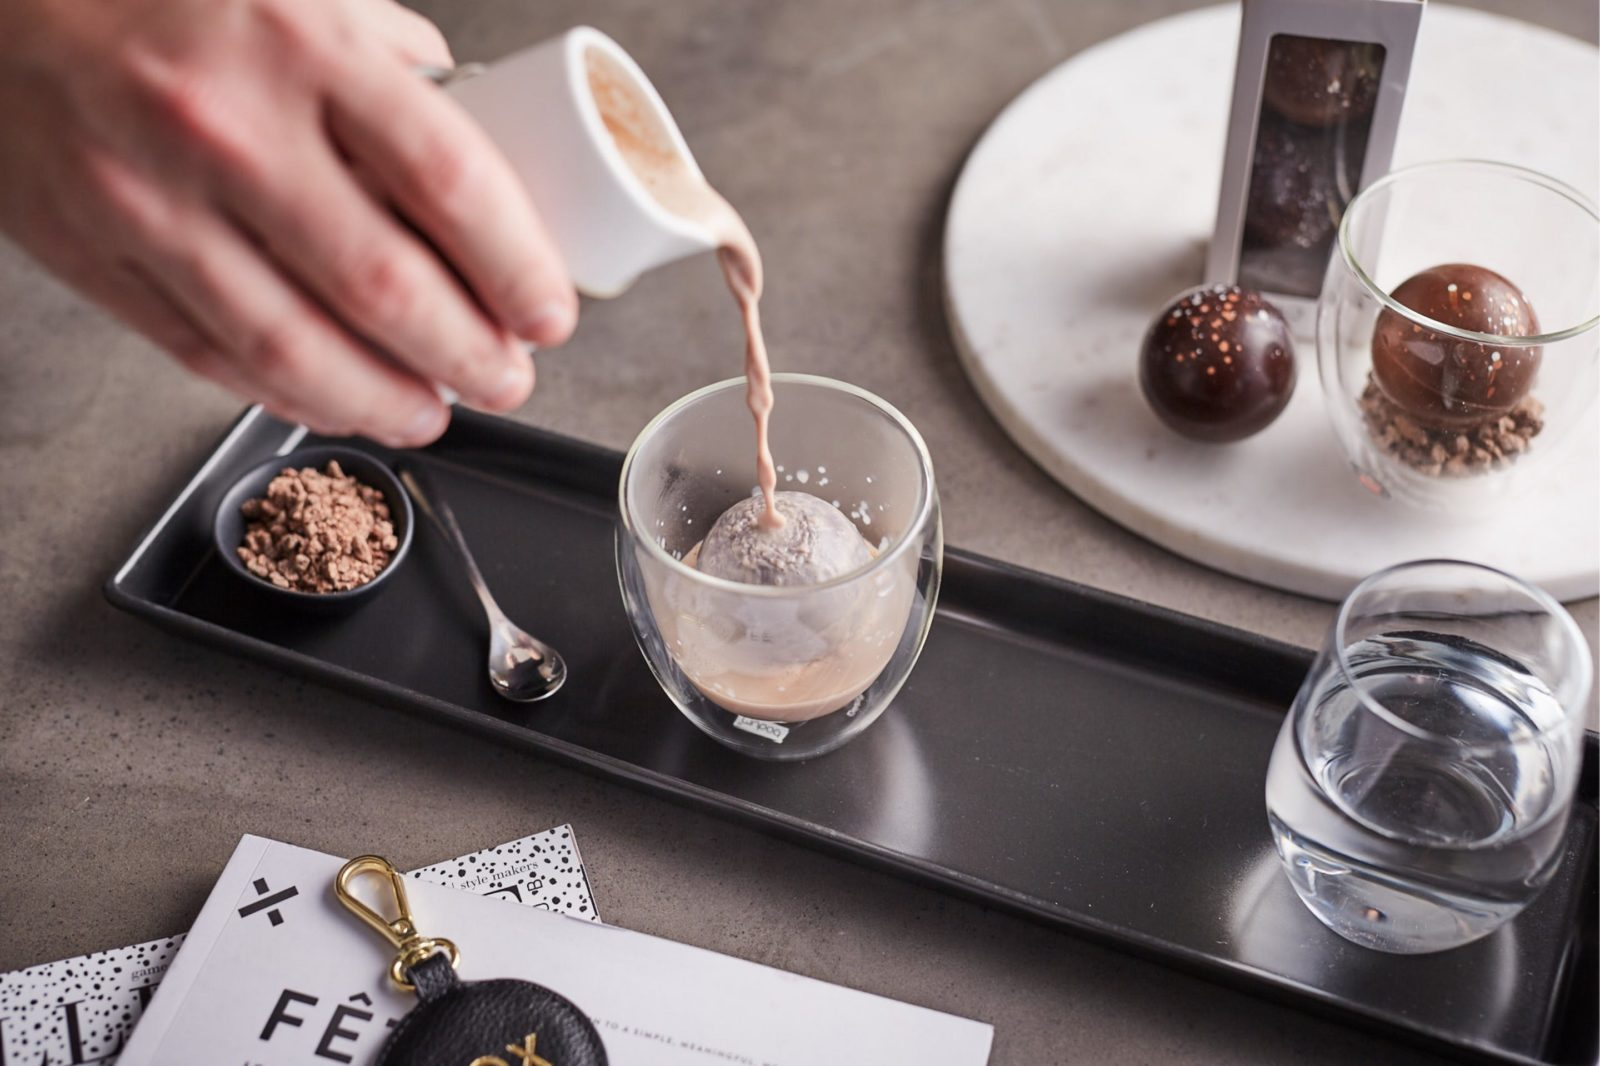 Pour the hot chocolate mix over the sphere, as it melts away our handmade marshmallow is revealed.